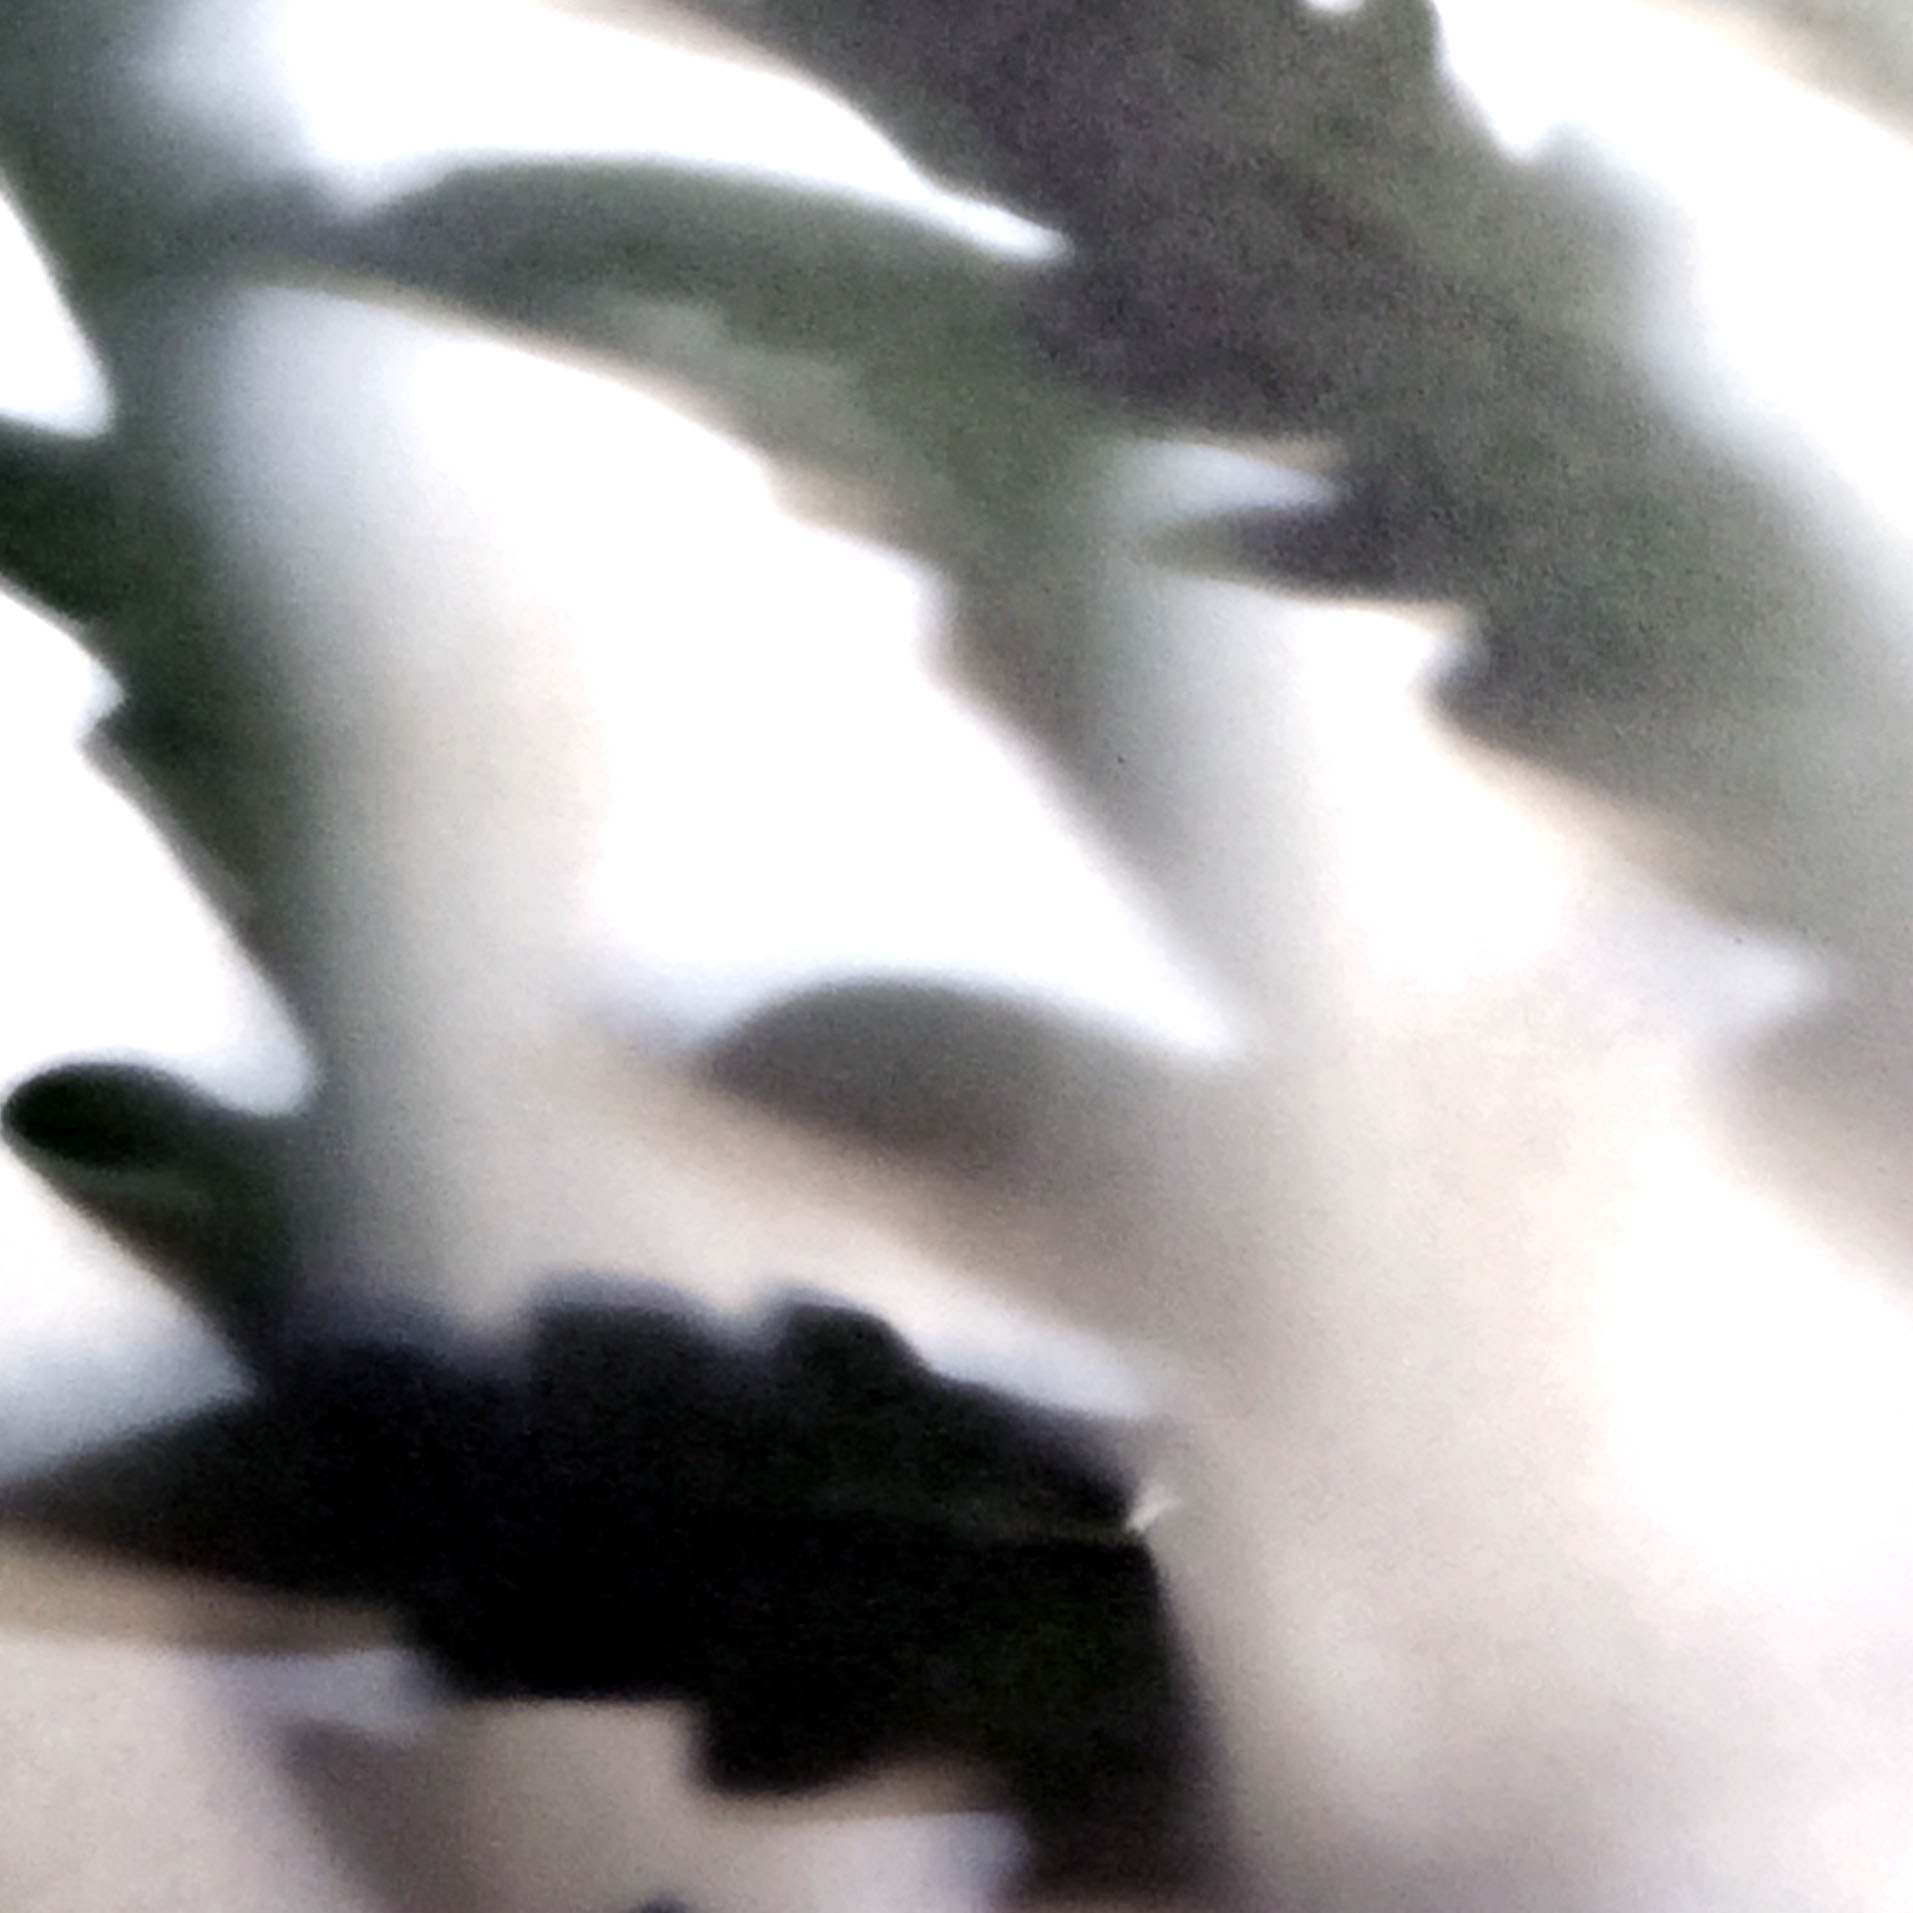 Artichoke 2, iPhone 5s photograph detail, from PAPER, PLANT, SUN series.